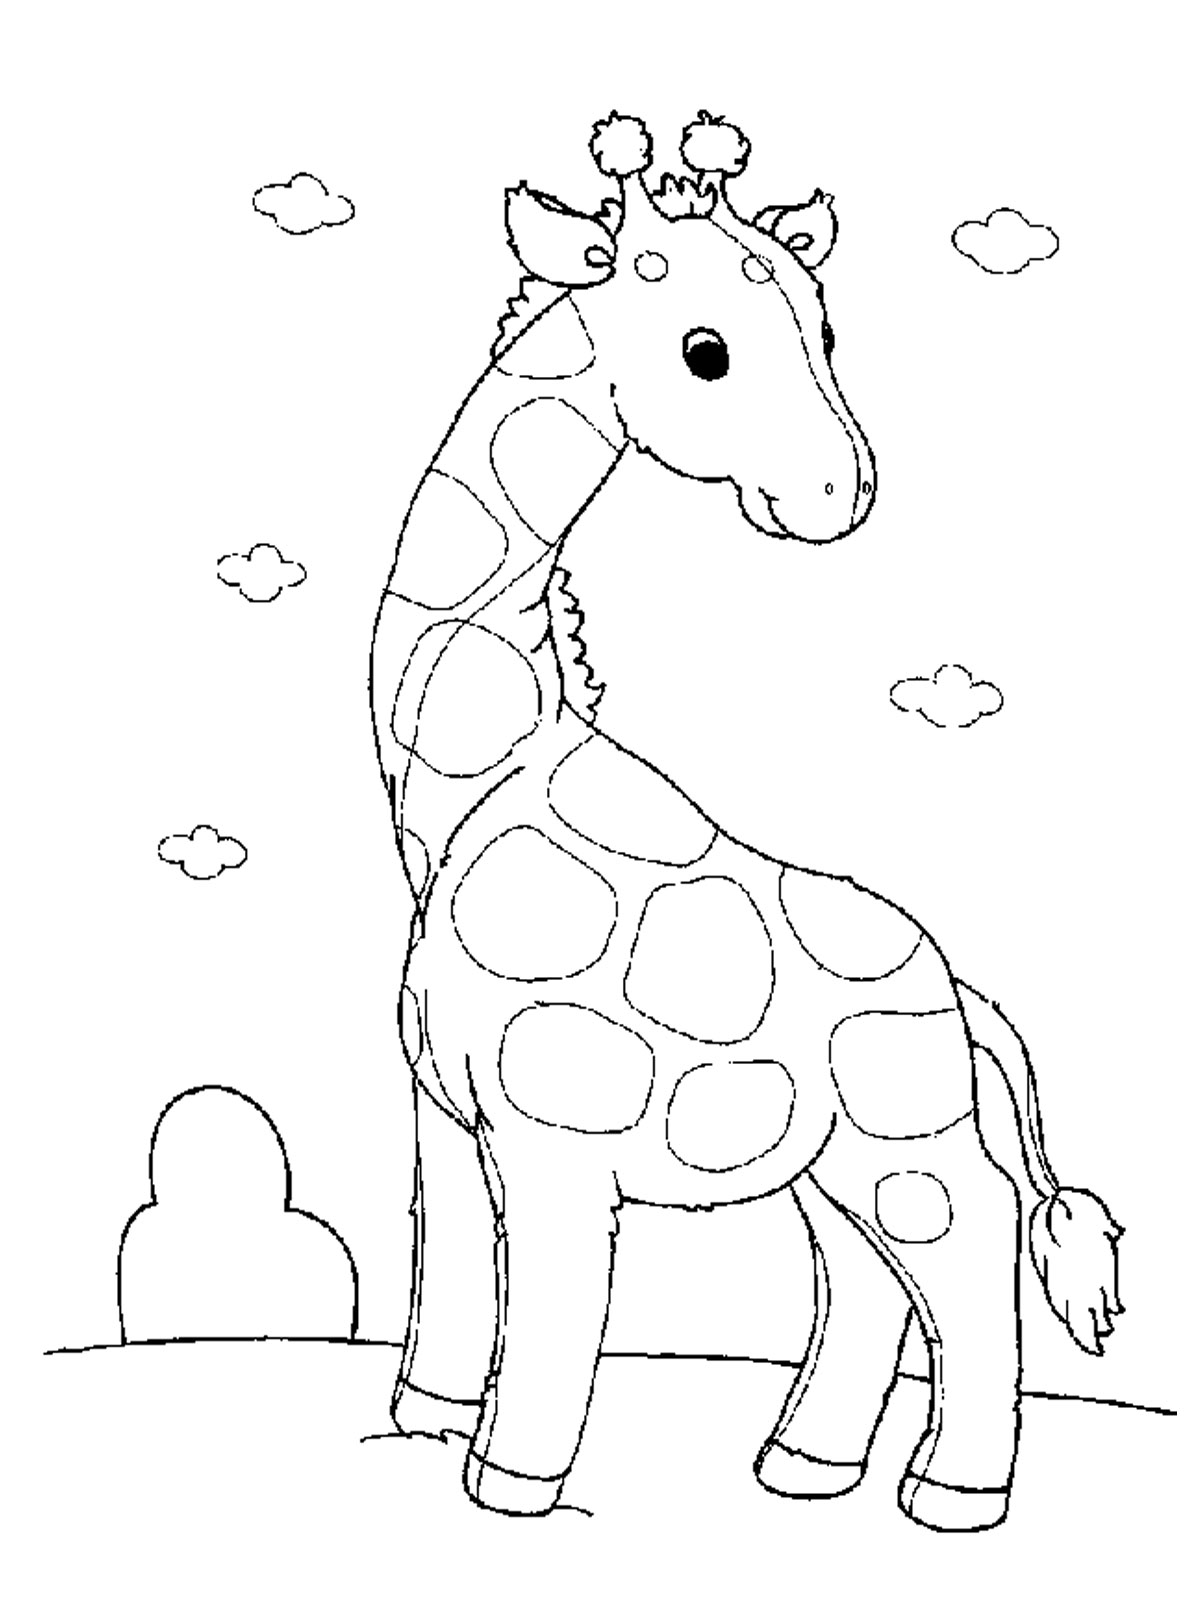 Coloring Pages Funny Animals : Free printable giraffe coloring pages for kids